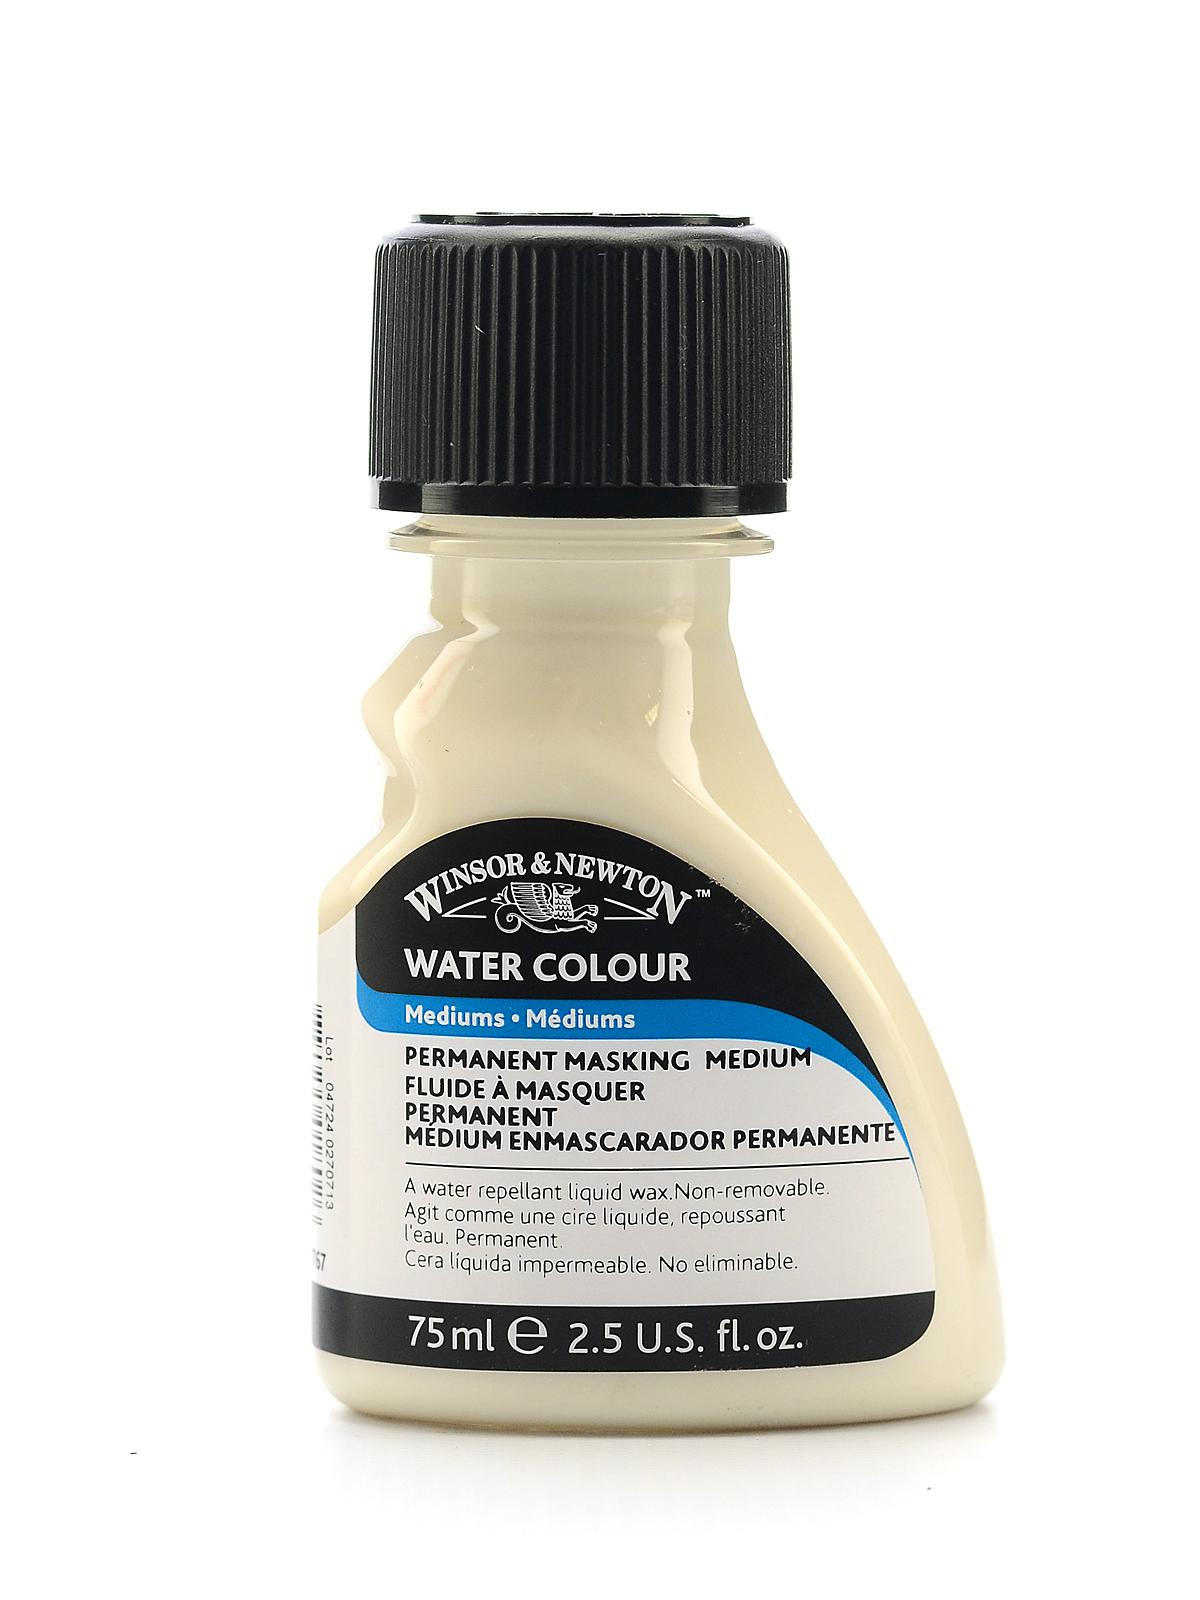 Water Colour Permanent Masking Medium